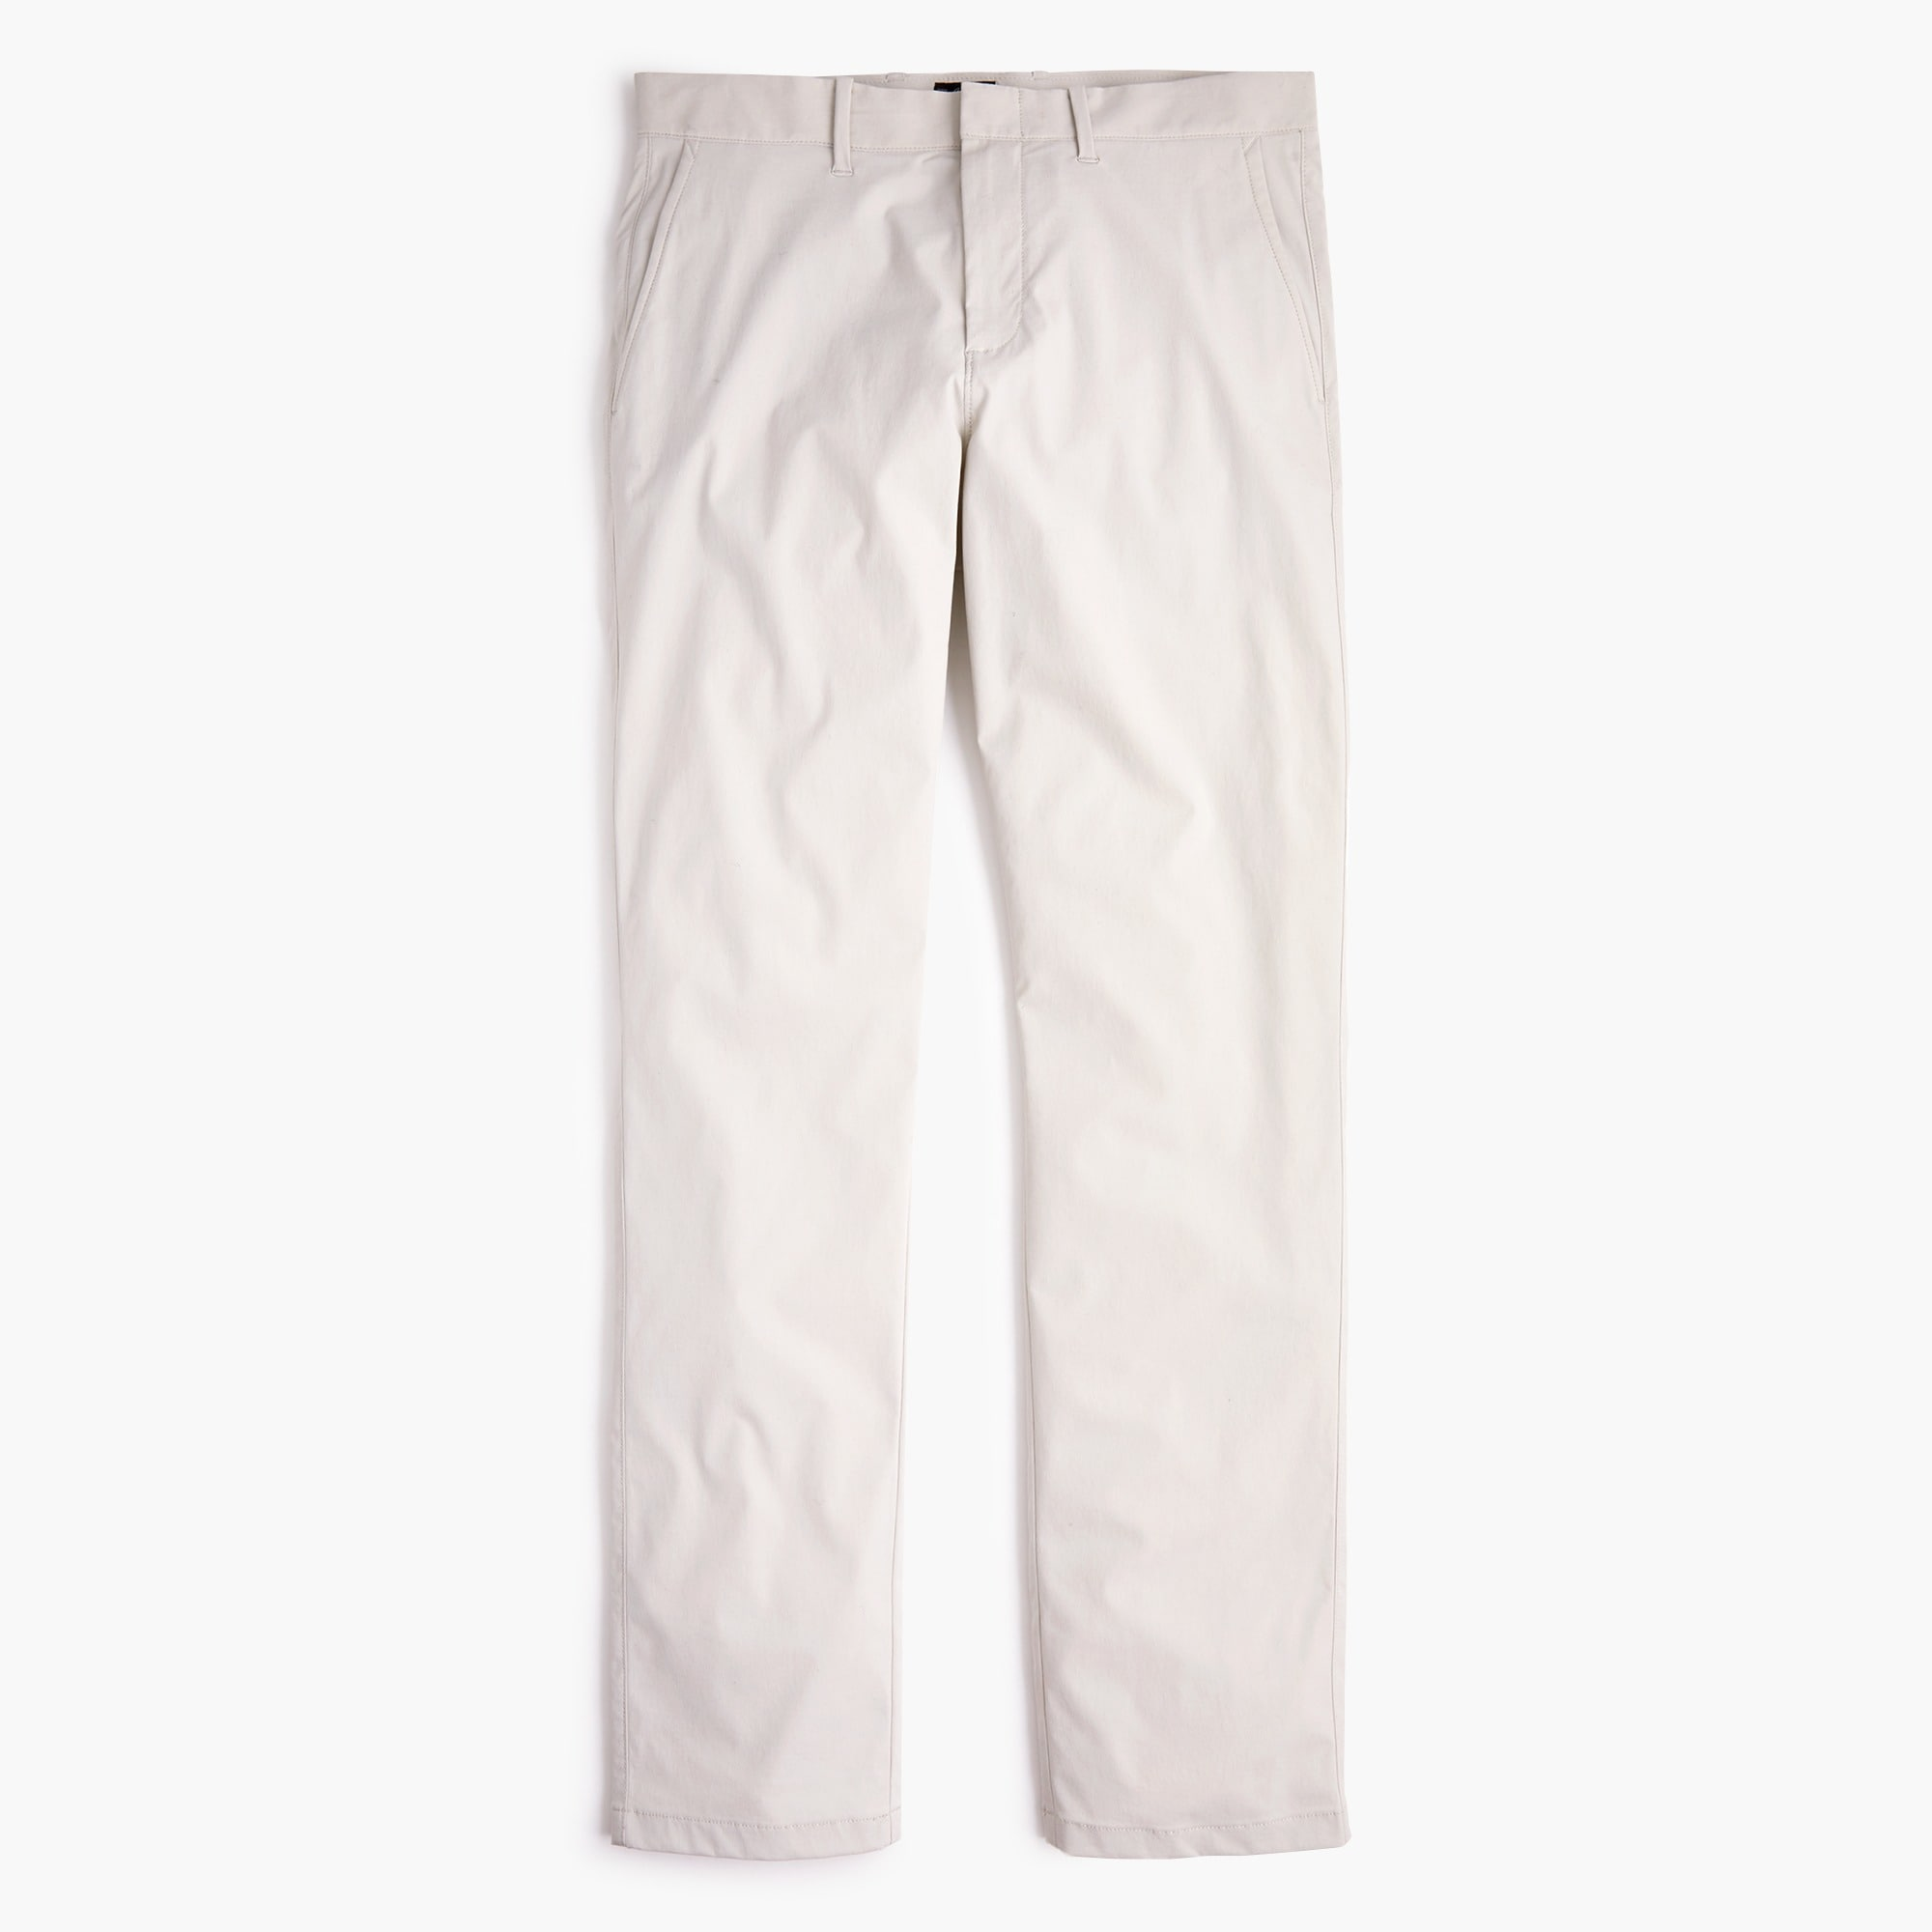 770 Straight-fit tech pant